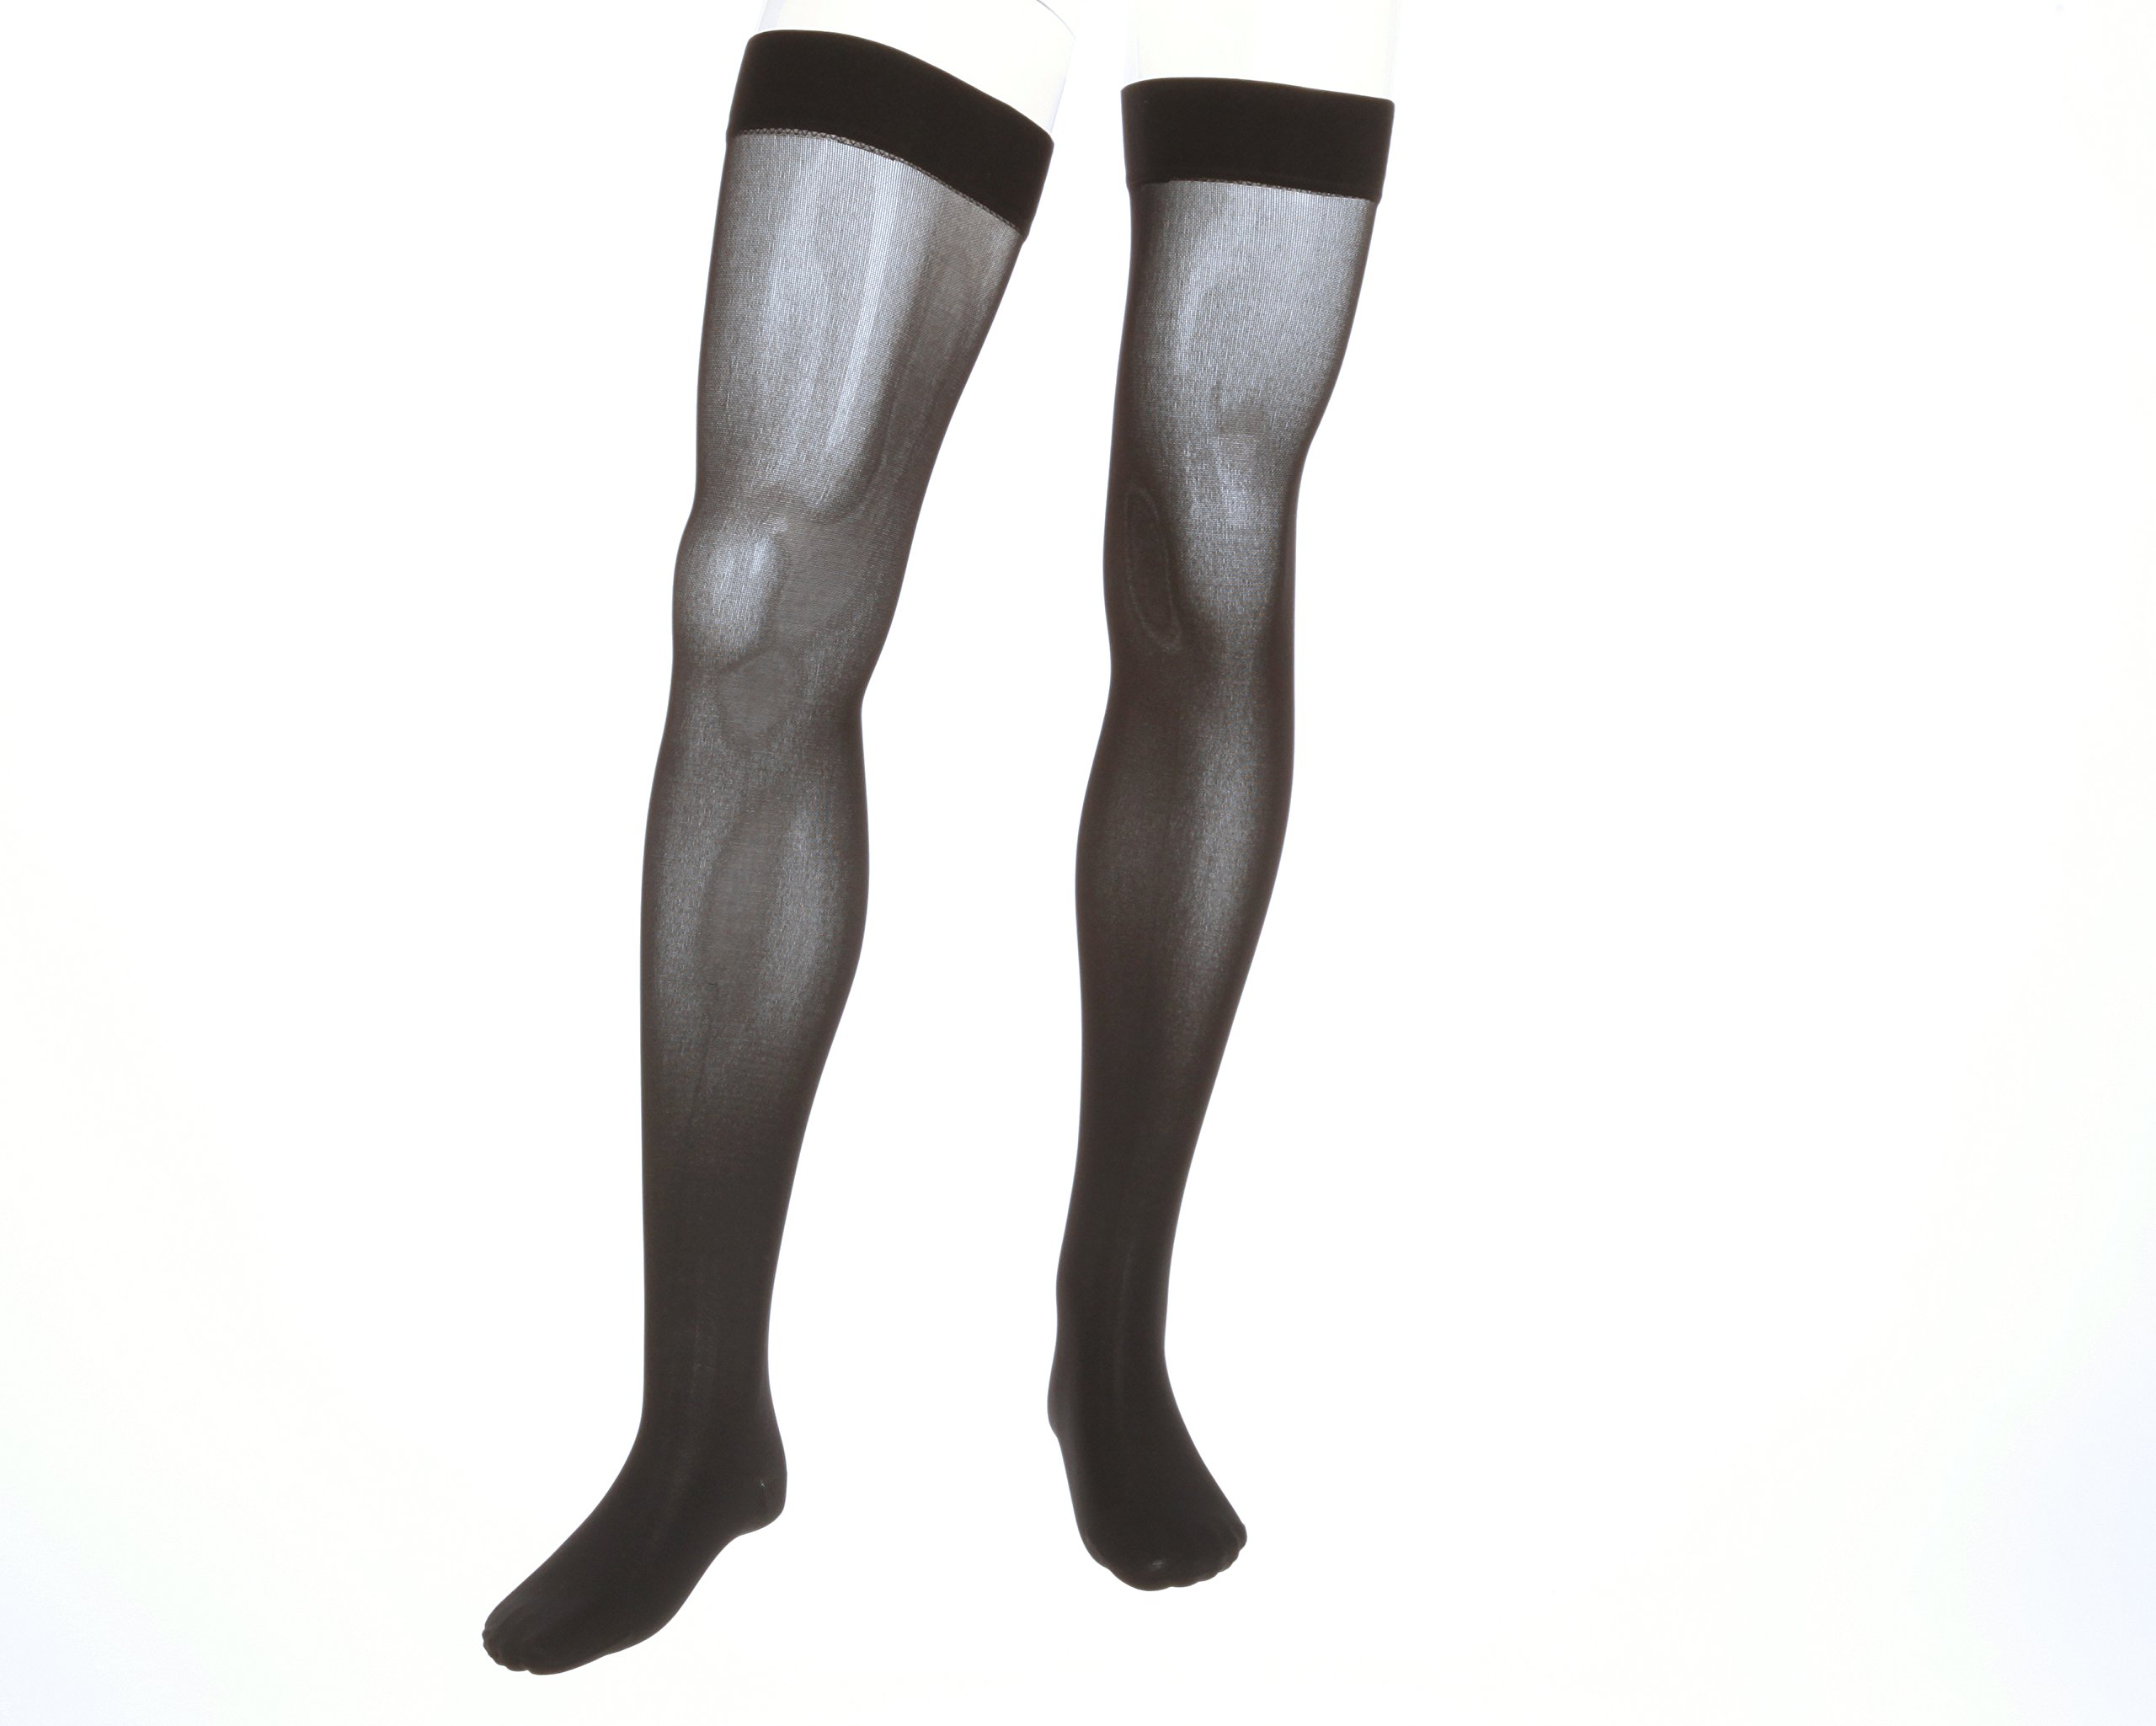 mediven Assure, 20-30 mmHg, Thigh High Compression Stockings, Closed Toe Compression Stockings